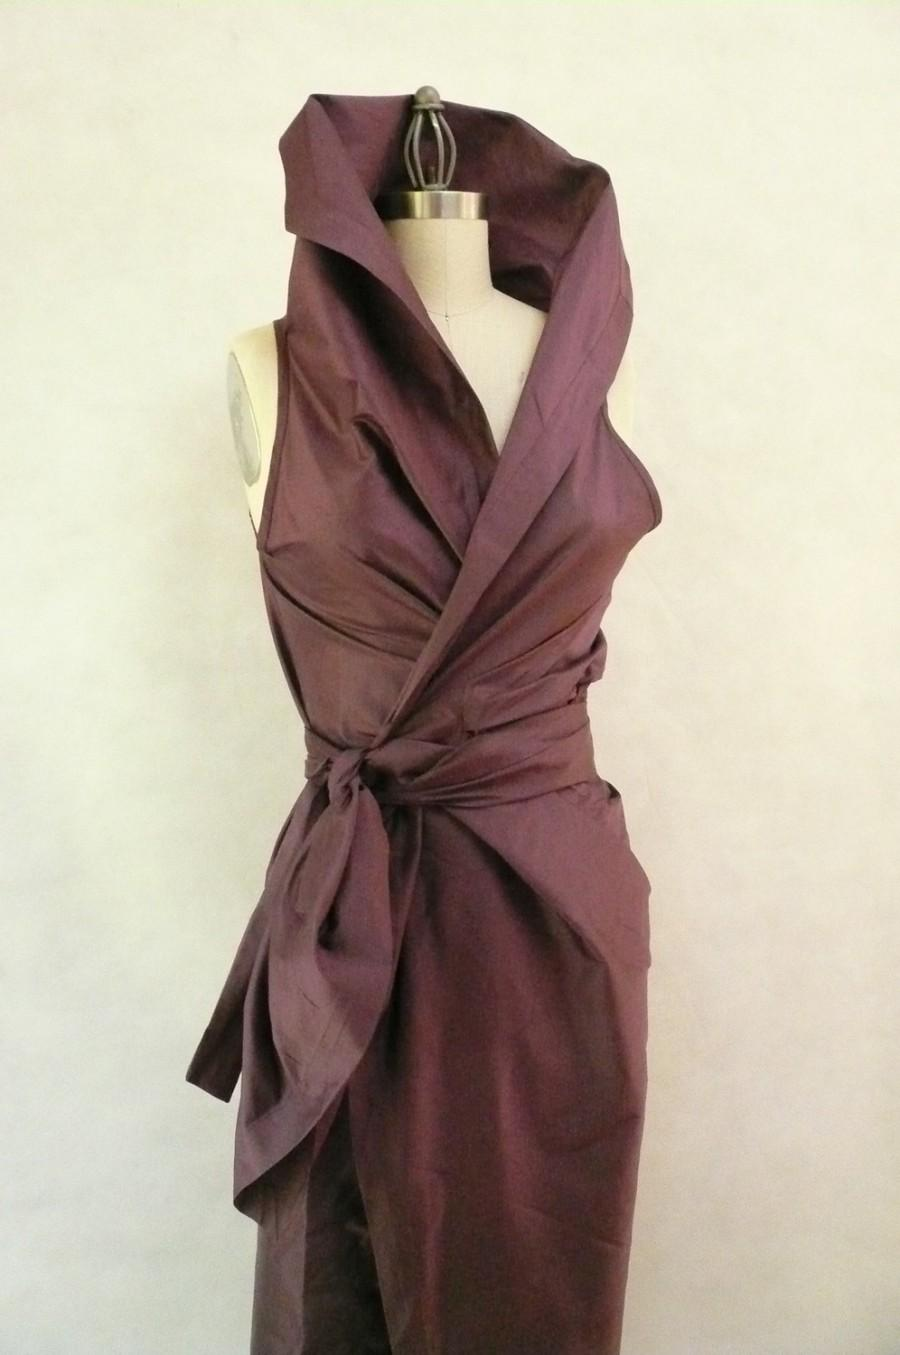 Mariage - Maria Severyna in Dusty Mauve Color Dupioni Wrap Dress